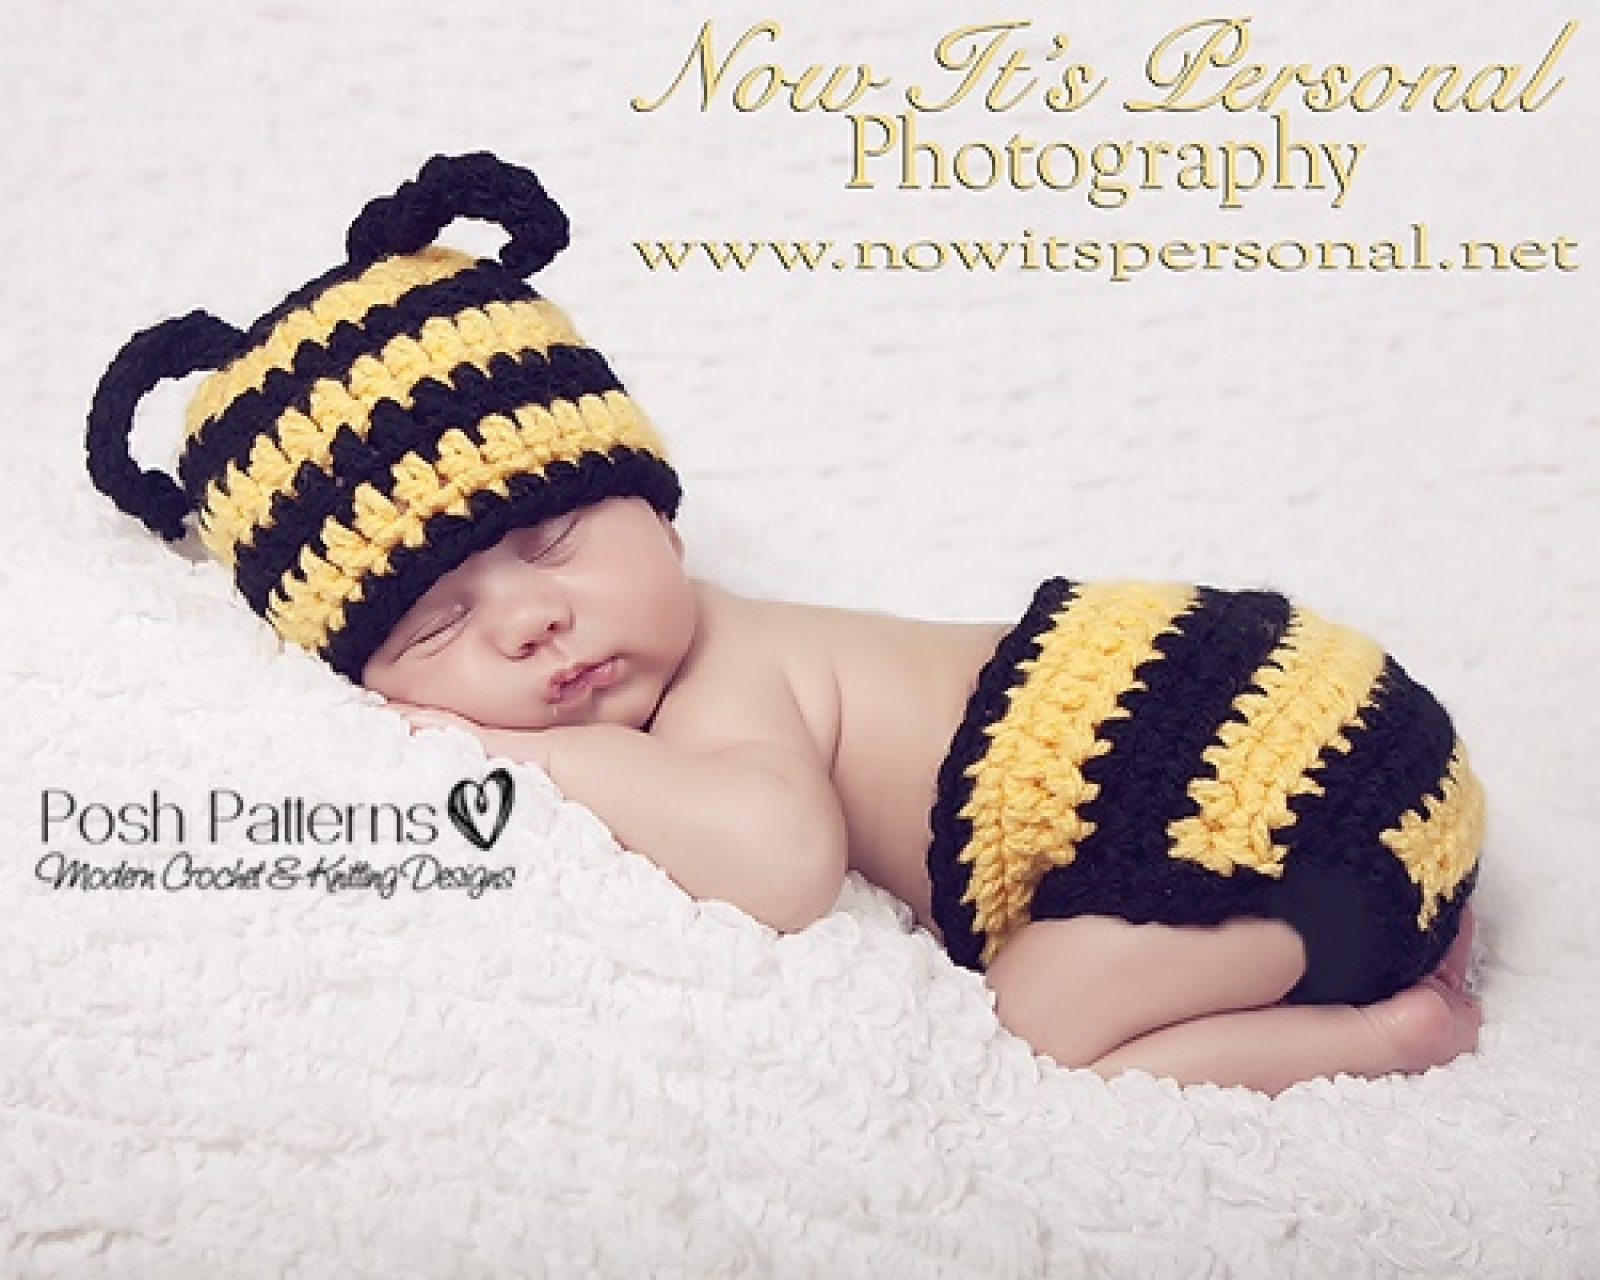 Crochet Patterns Baby Bumble Bee Hat and Diaper Cover